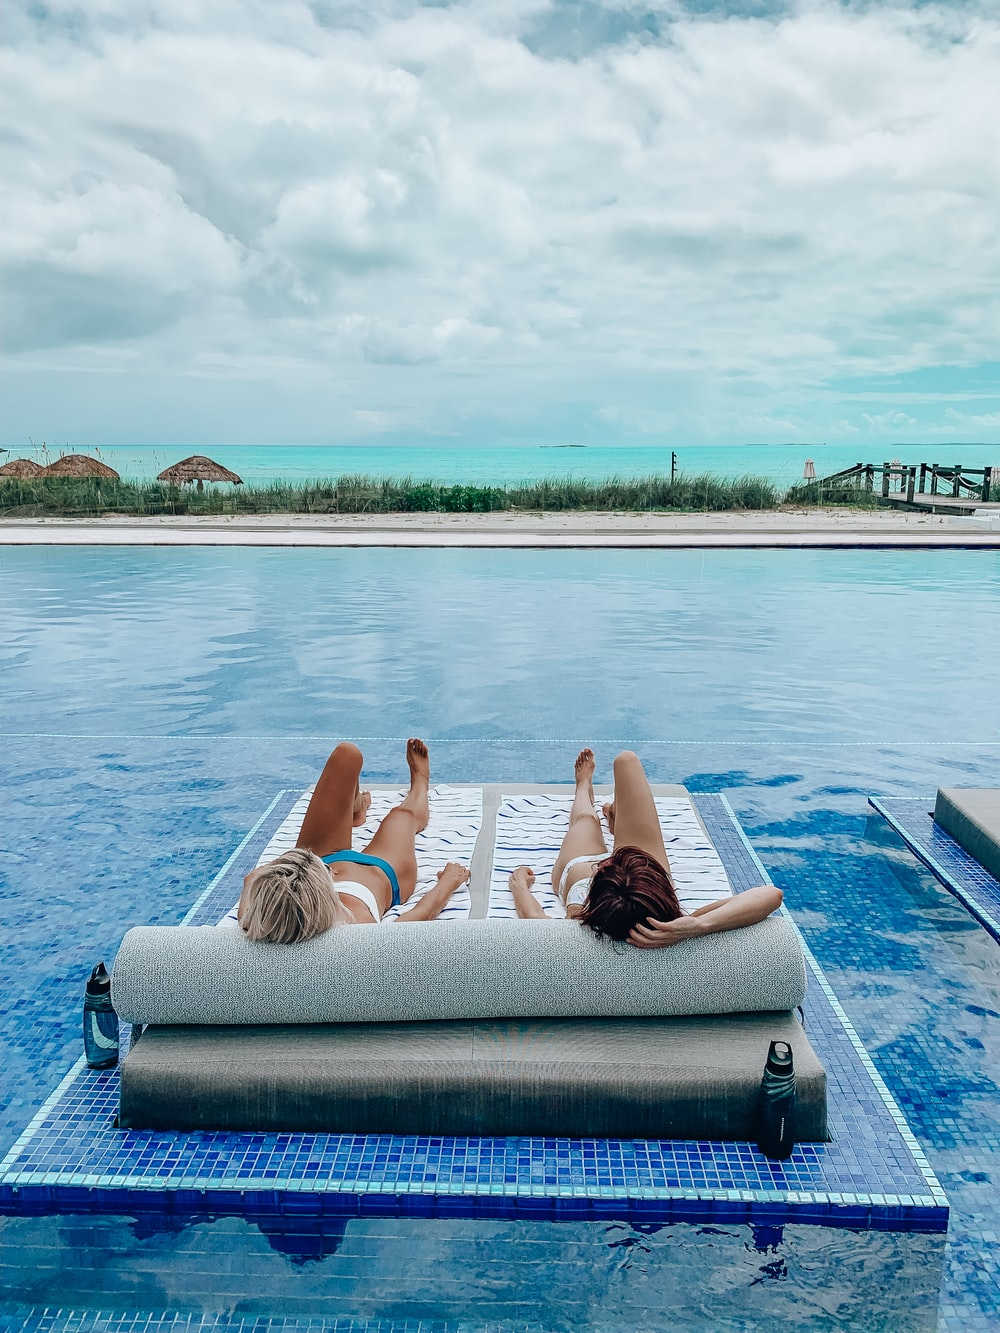 2 women lying on blue towel on blue swimming pool during daytime